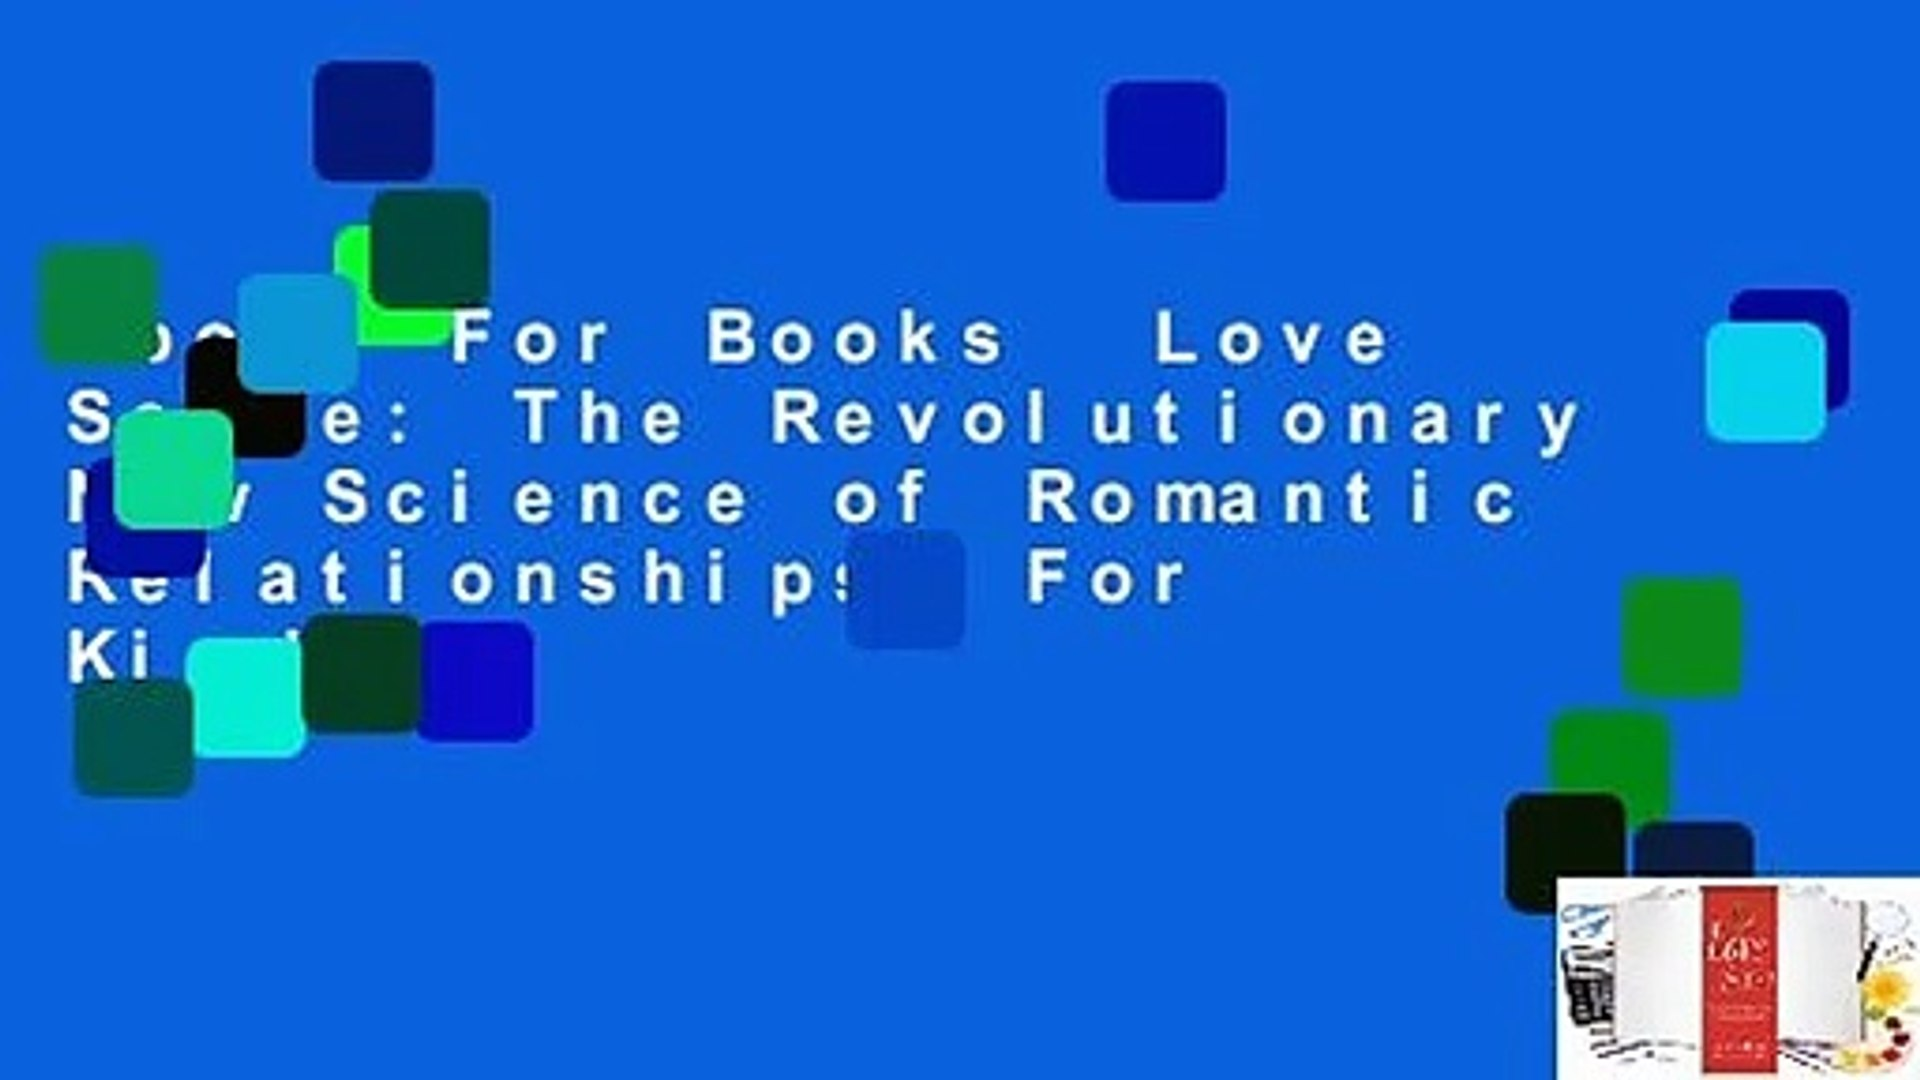 About For Books  Love Sense: The Revolutionary New Science of Romantic Relationships  For Kindle